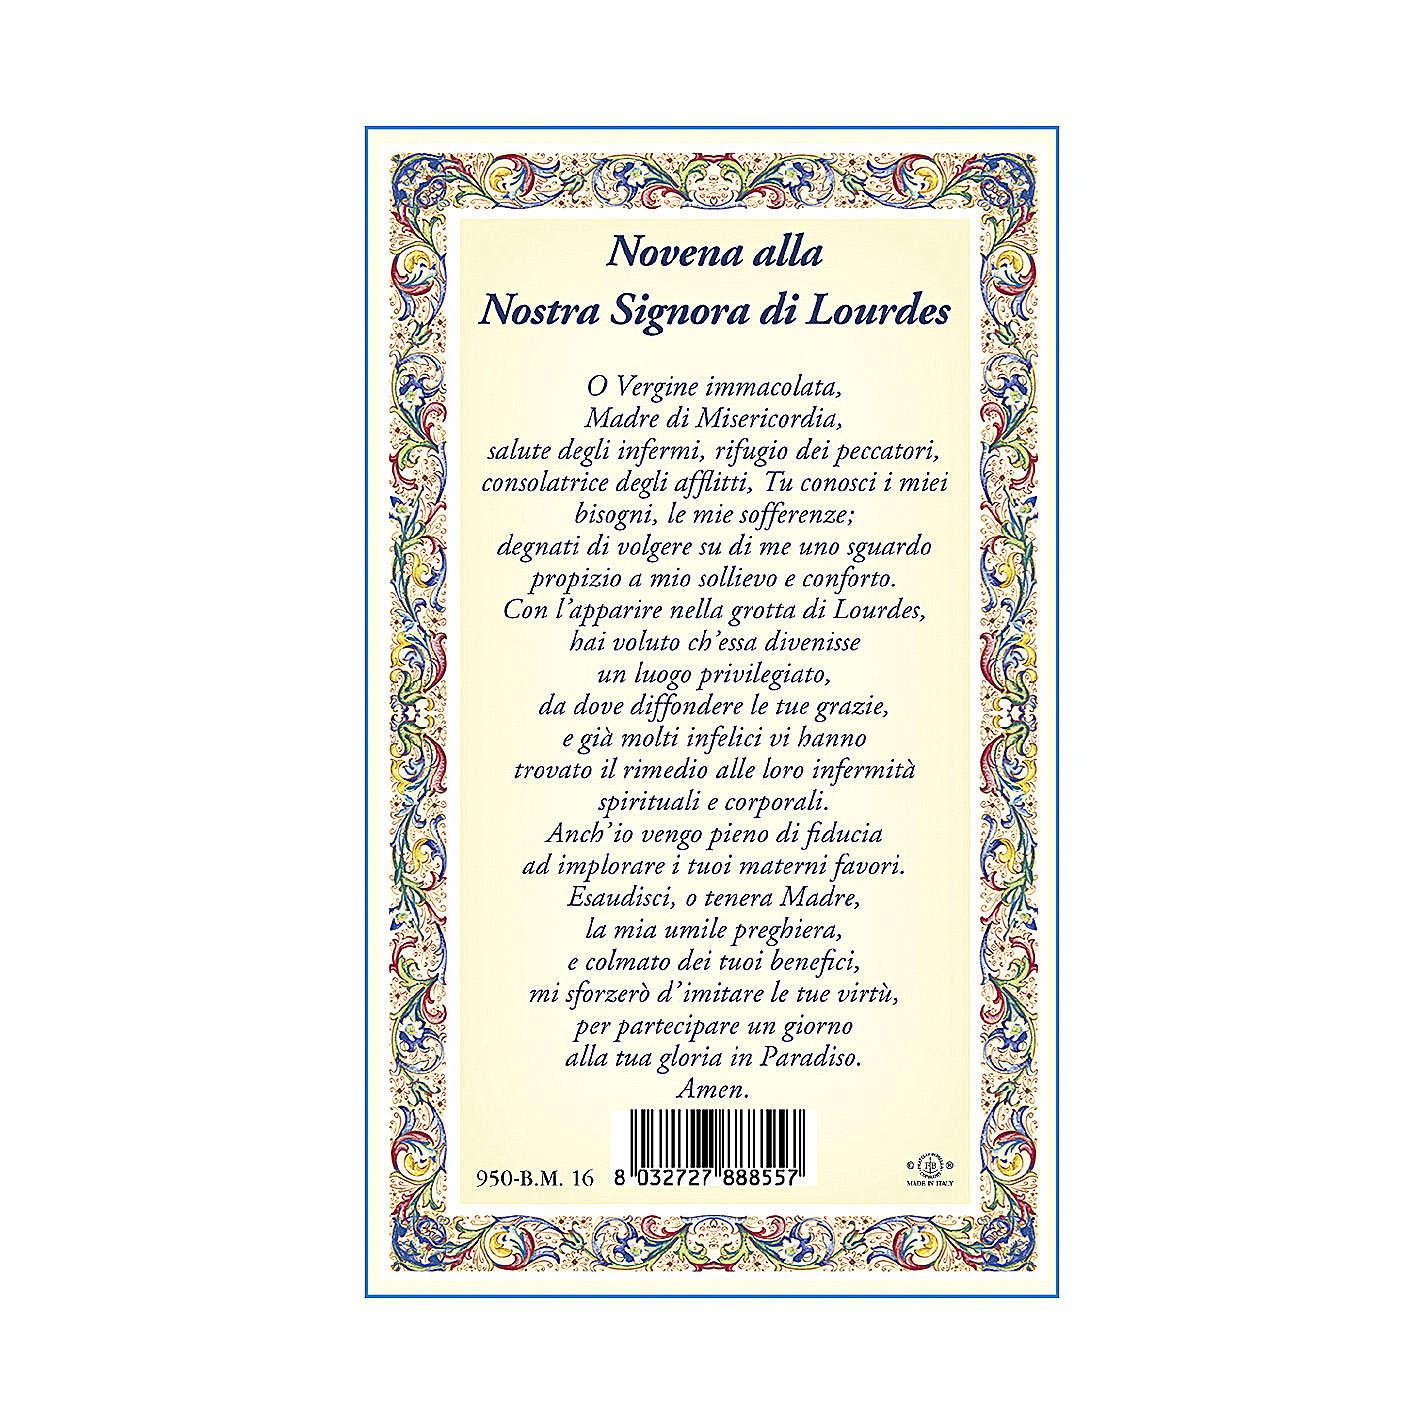 Our Lady of Lourdes medal with chain and card with Novena to Our Lady of Lourdes prayer in ITALIAN 4